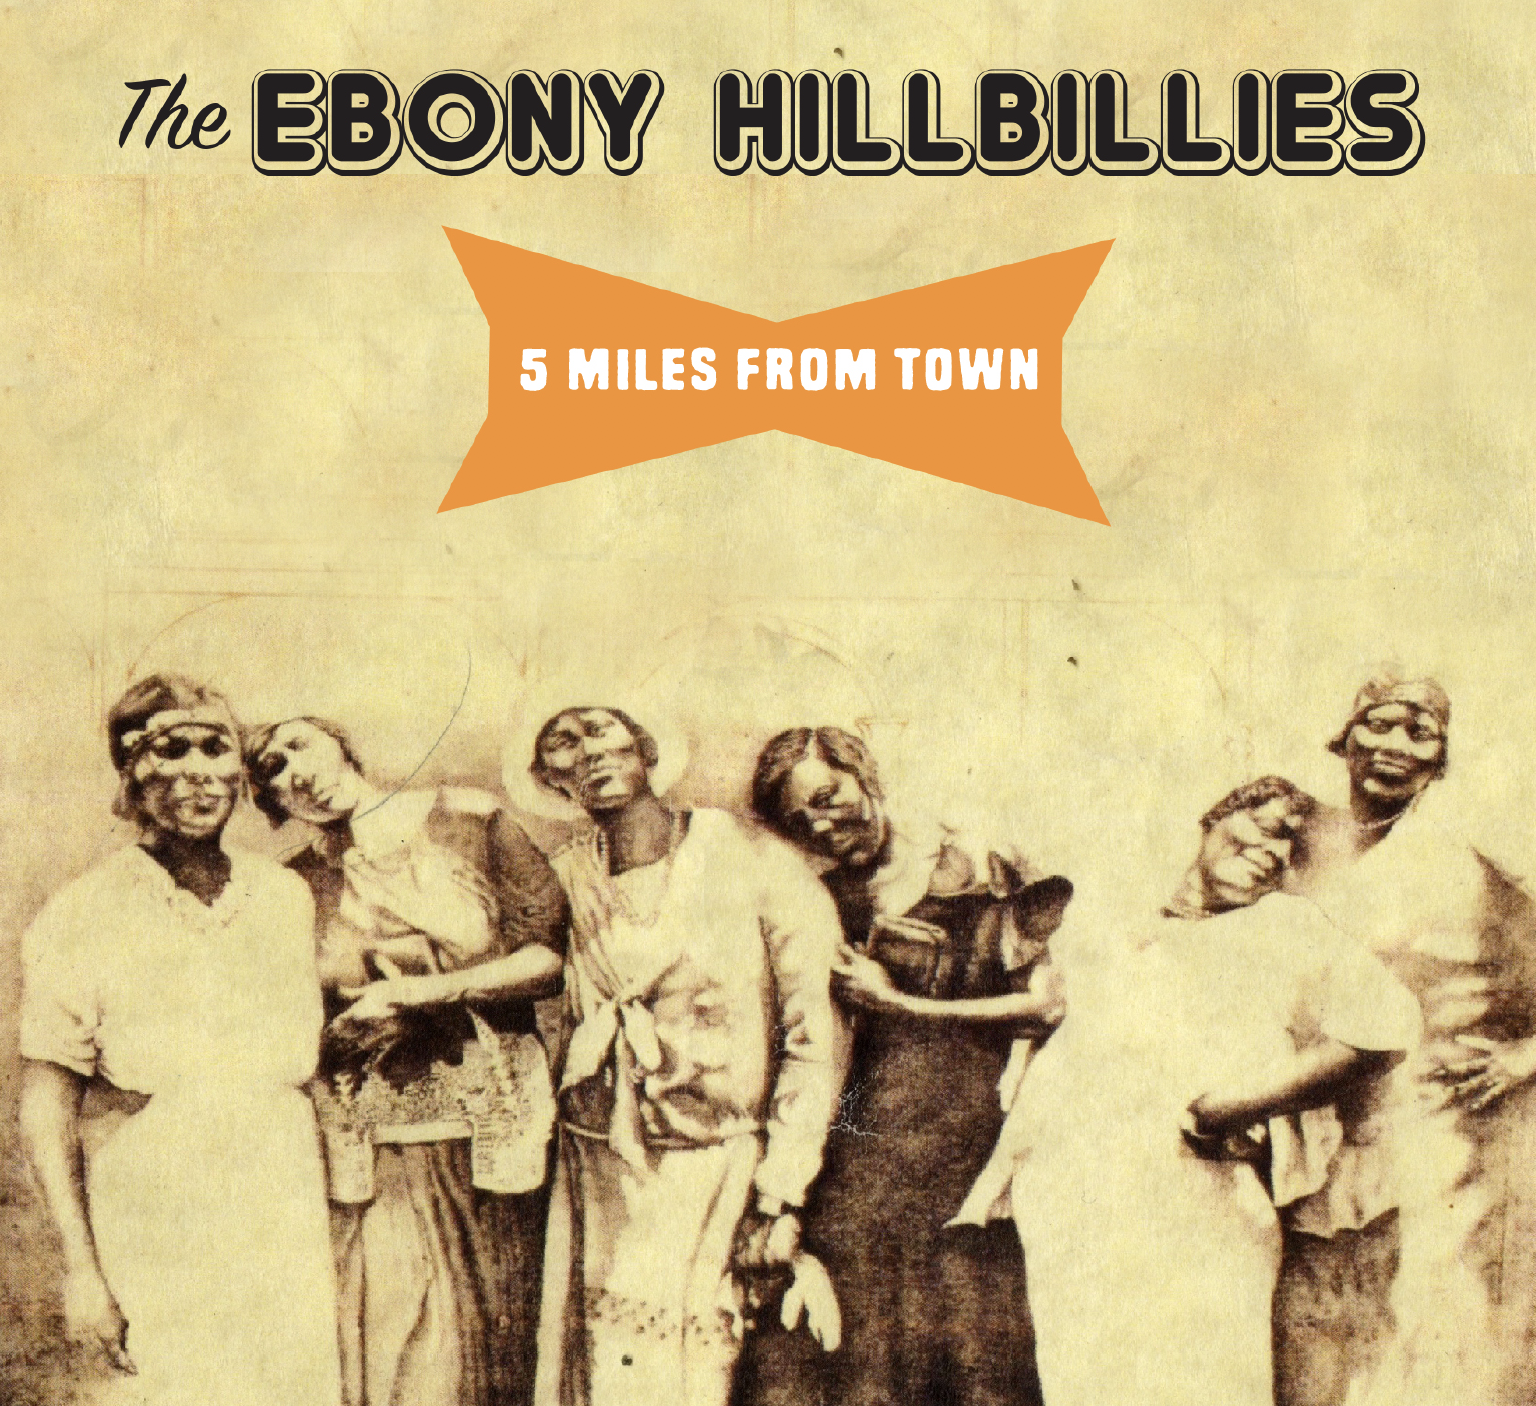 EBONY HILLBILLIES